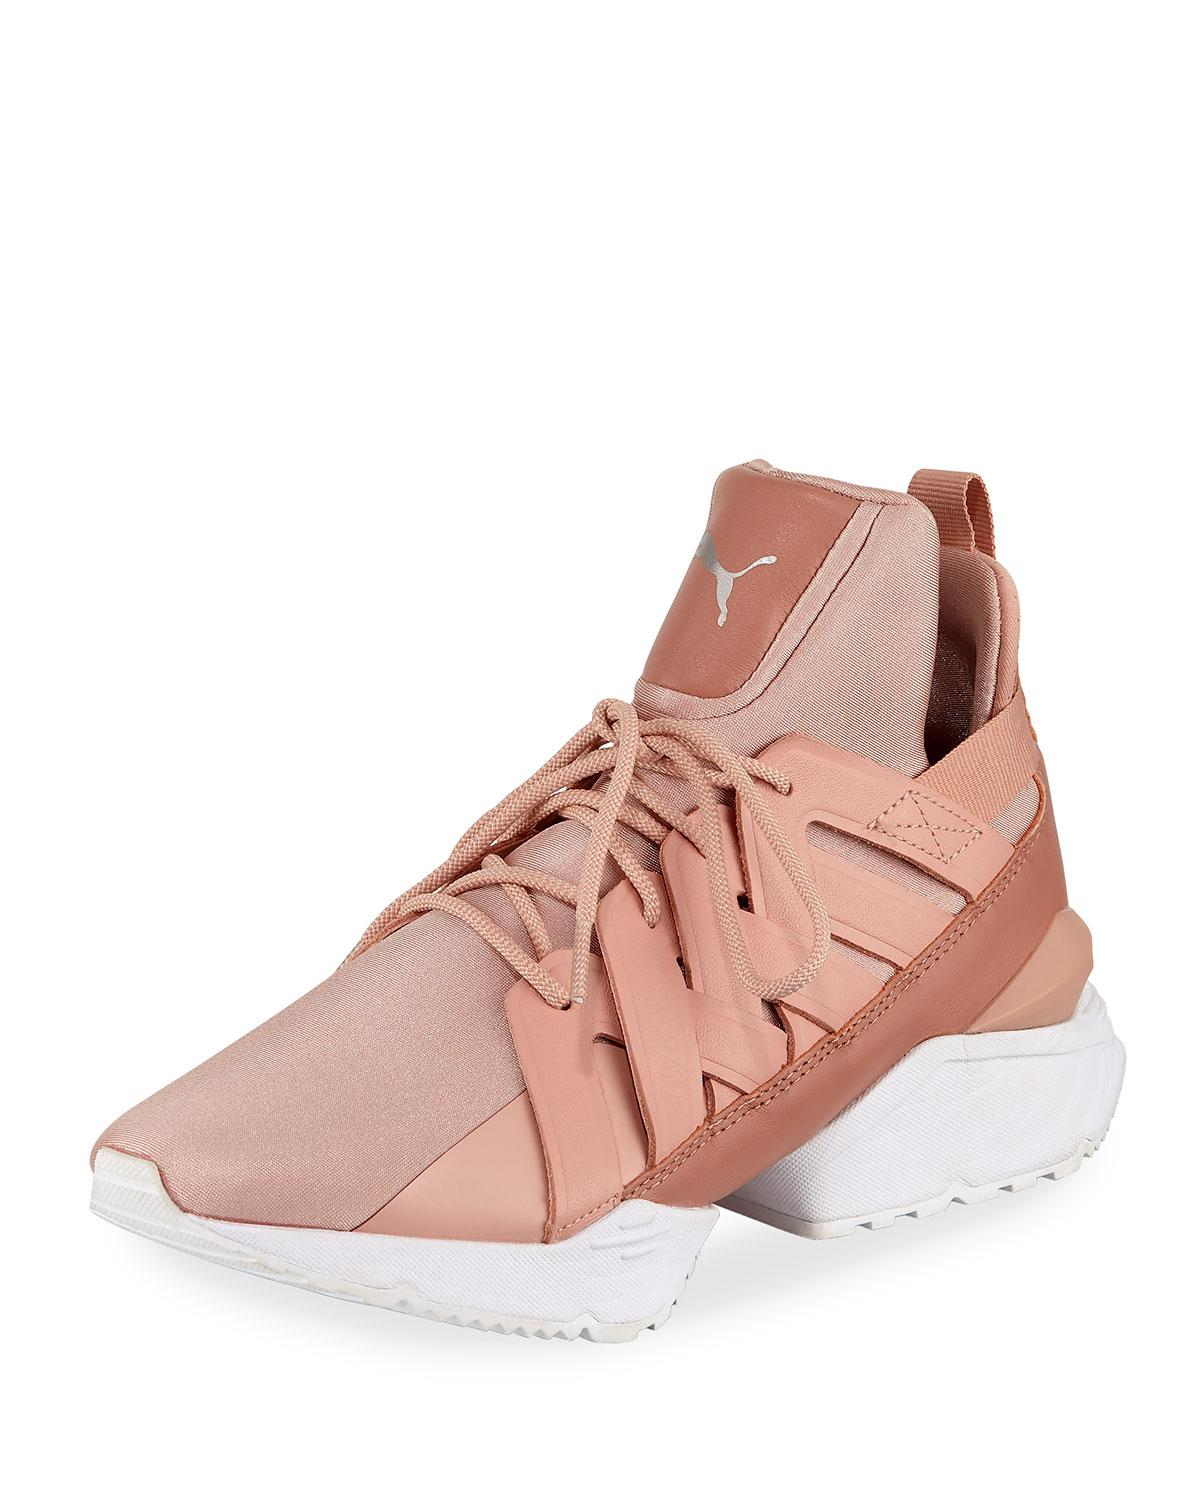 7a2f1d314f2 Lyst - PUMA Muse Echo Satin Sneakers in Pink